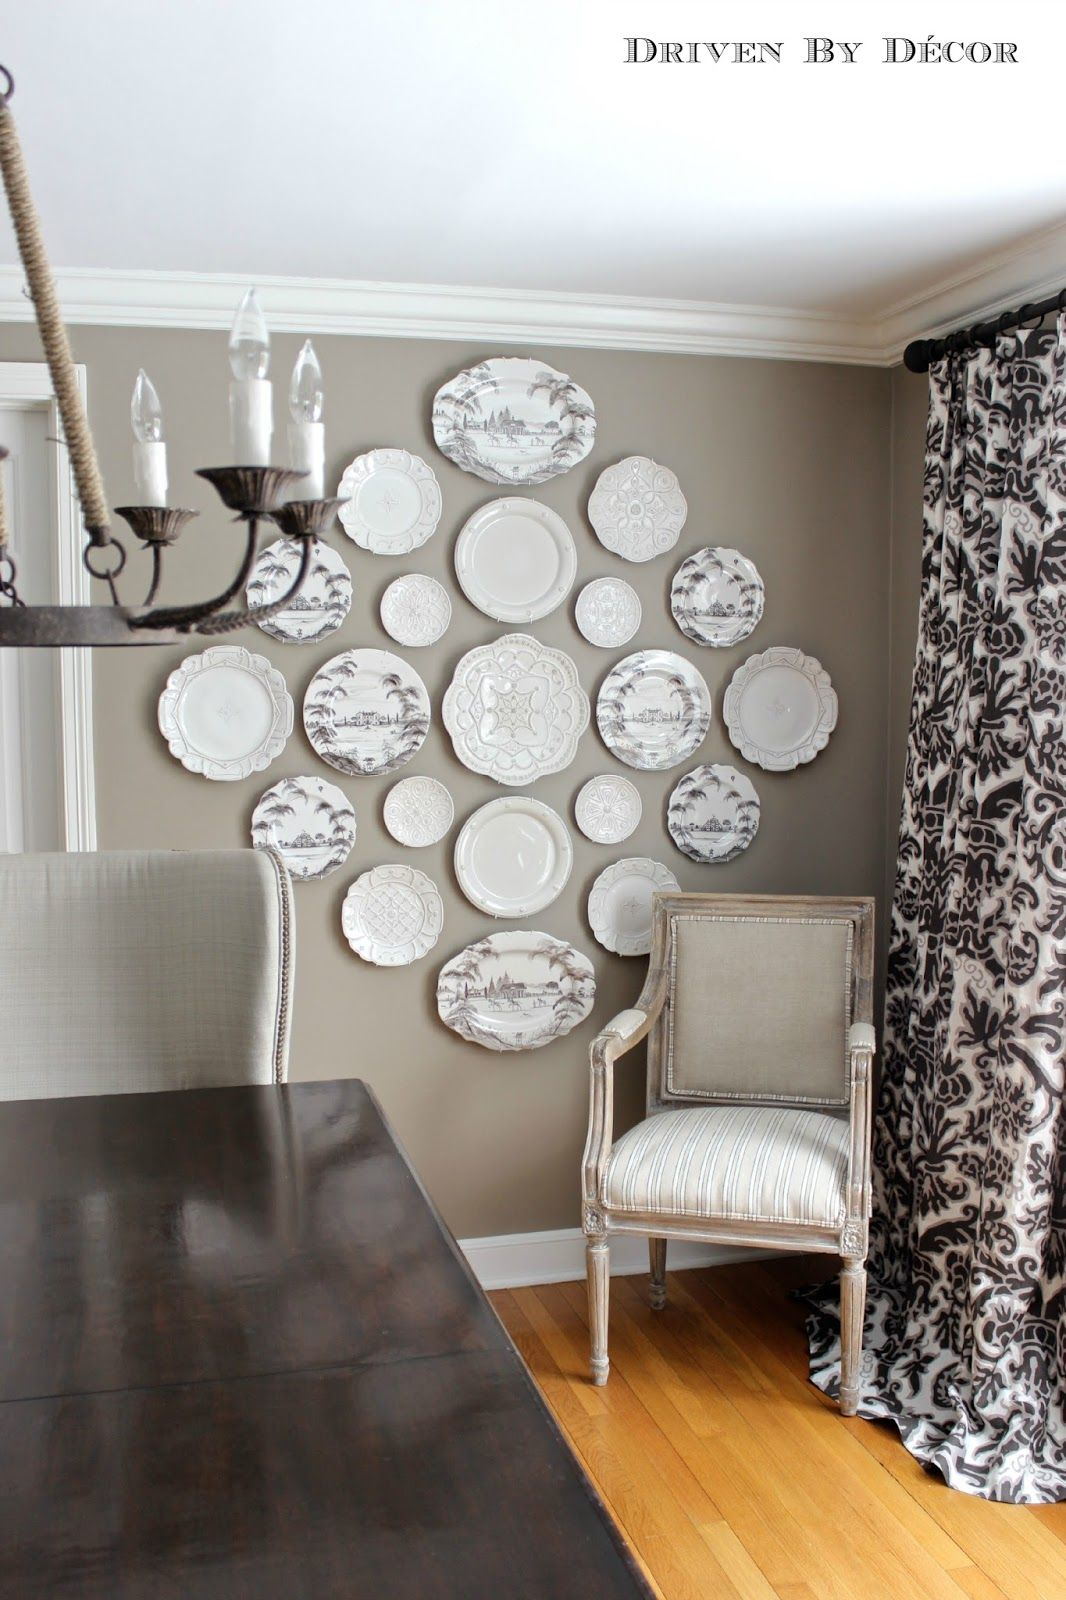 How To Hang Plates On The Wall The Best Hangers More Diy